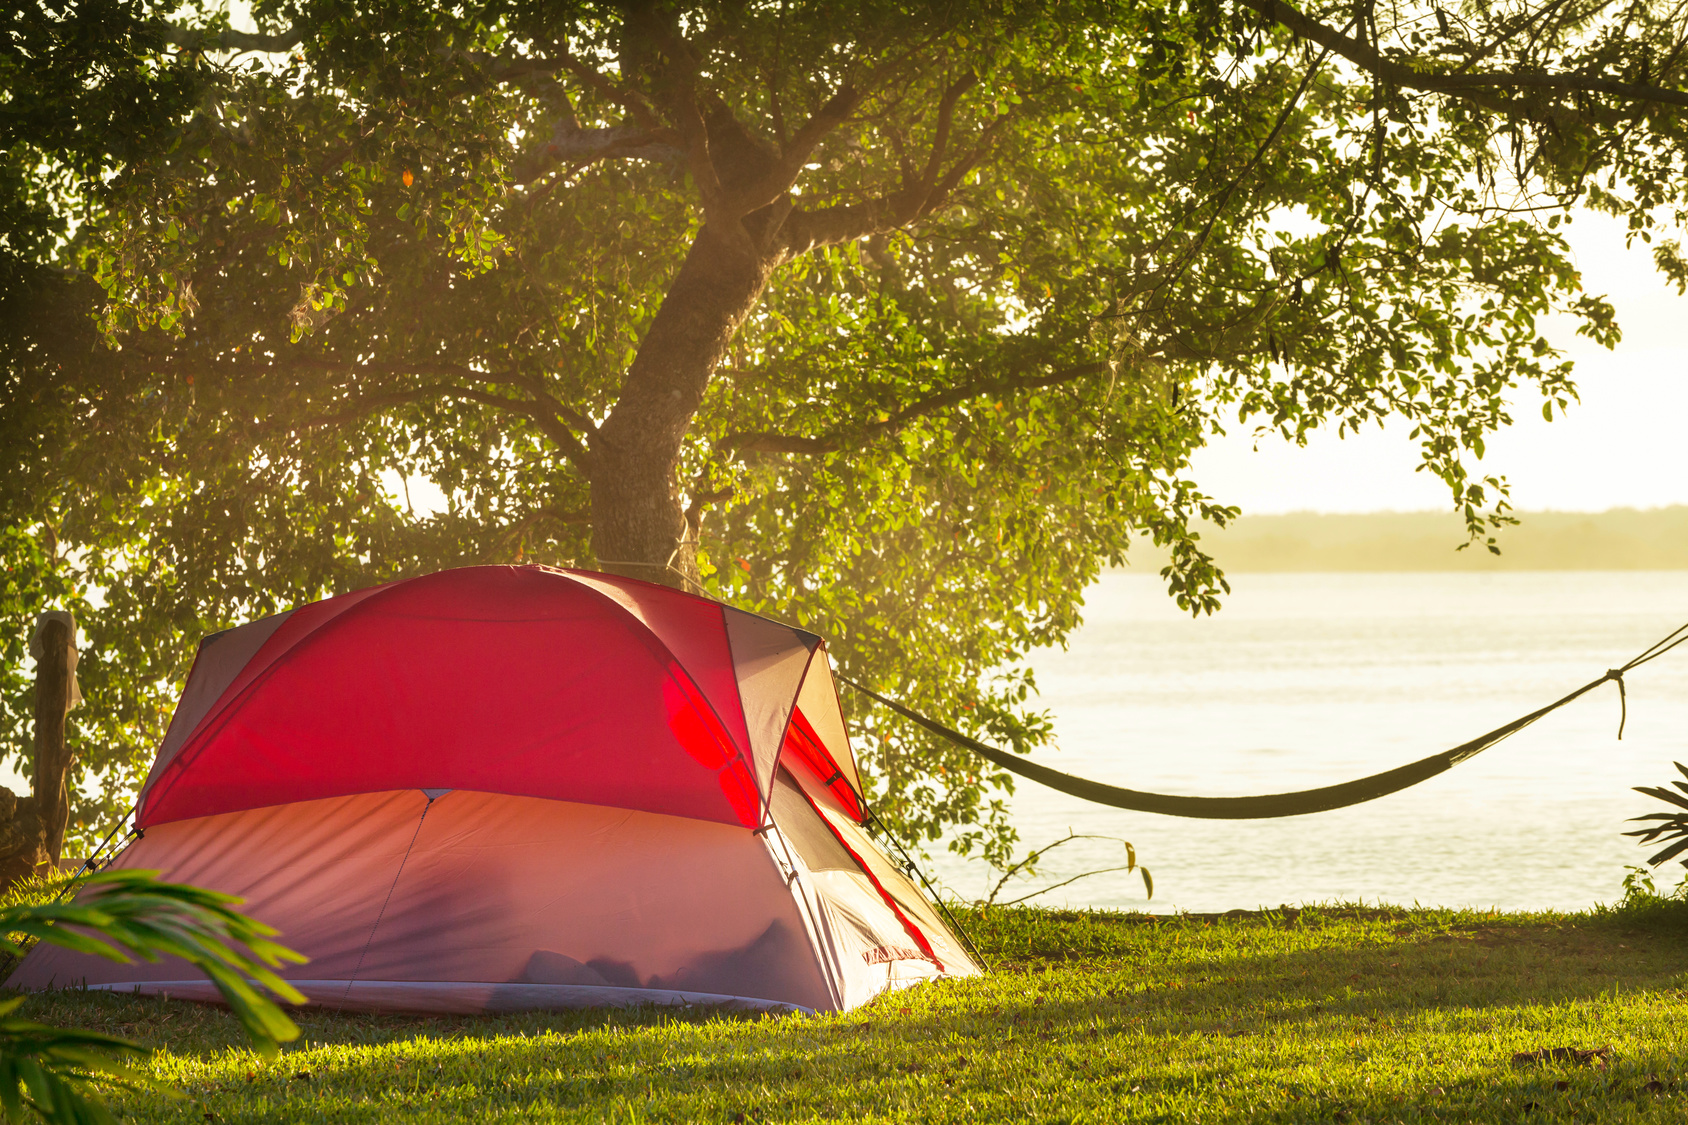 5 Things to Keep in Mind While Camping